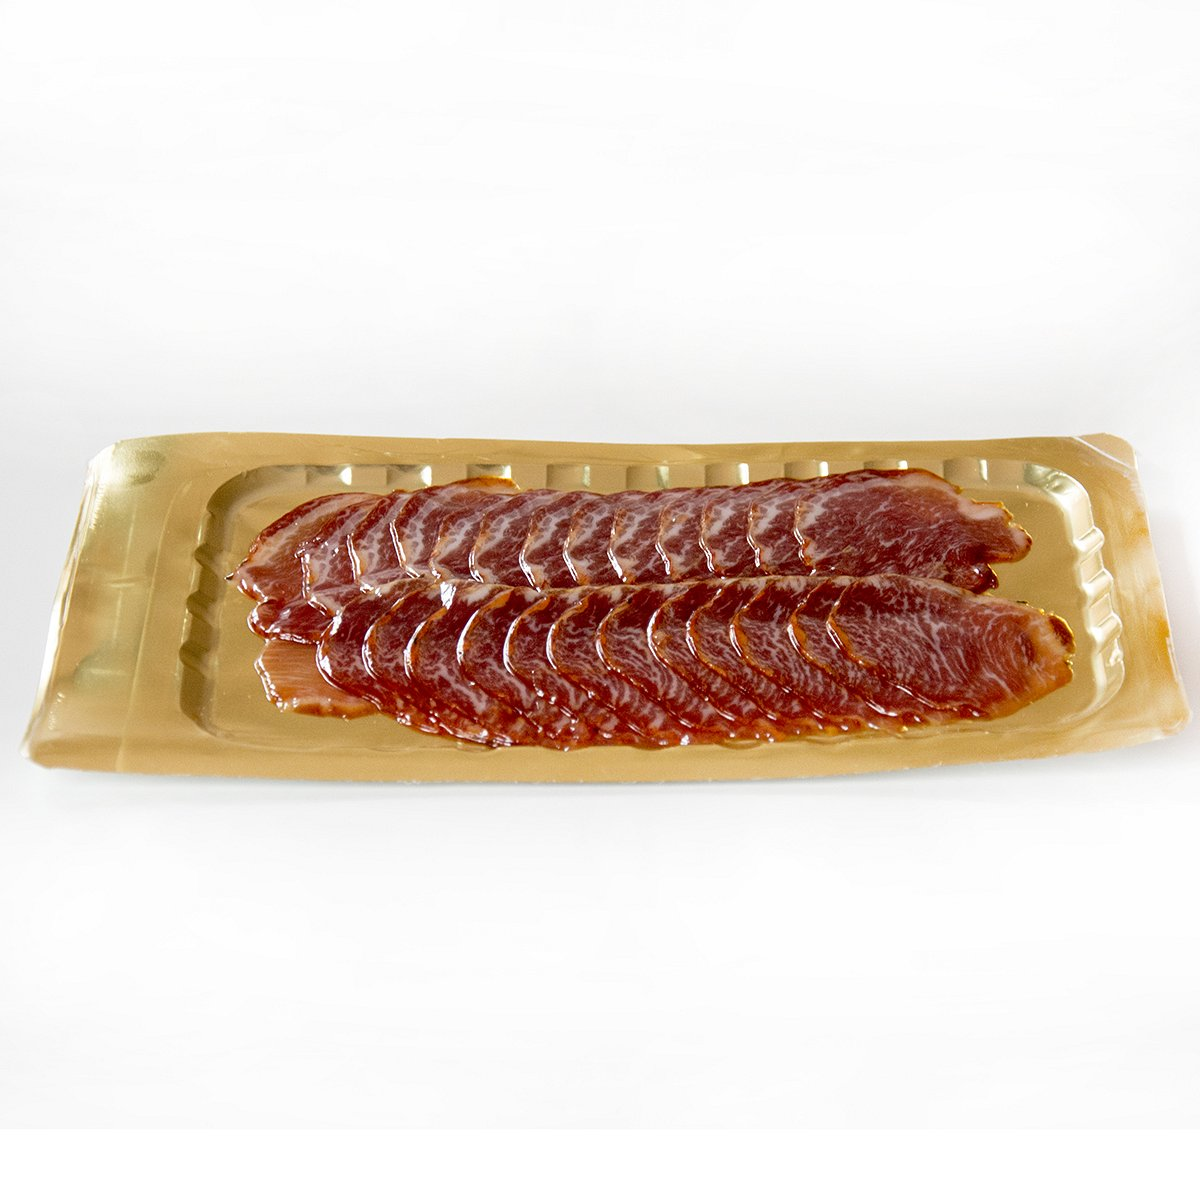 Spanish Cured Loin Extra - Sliced